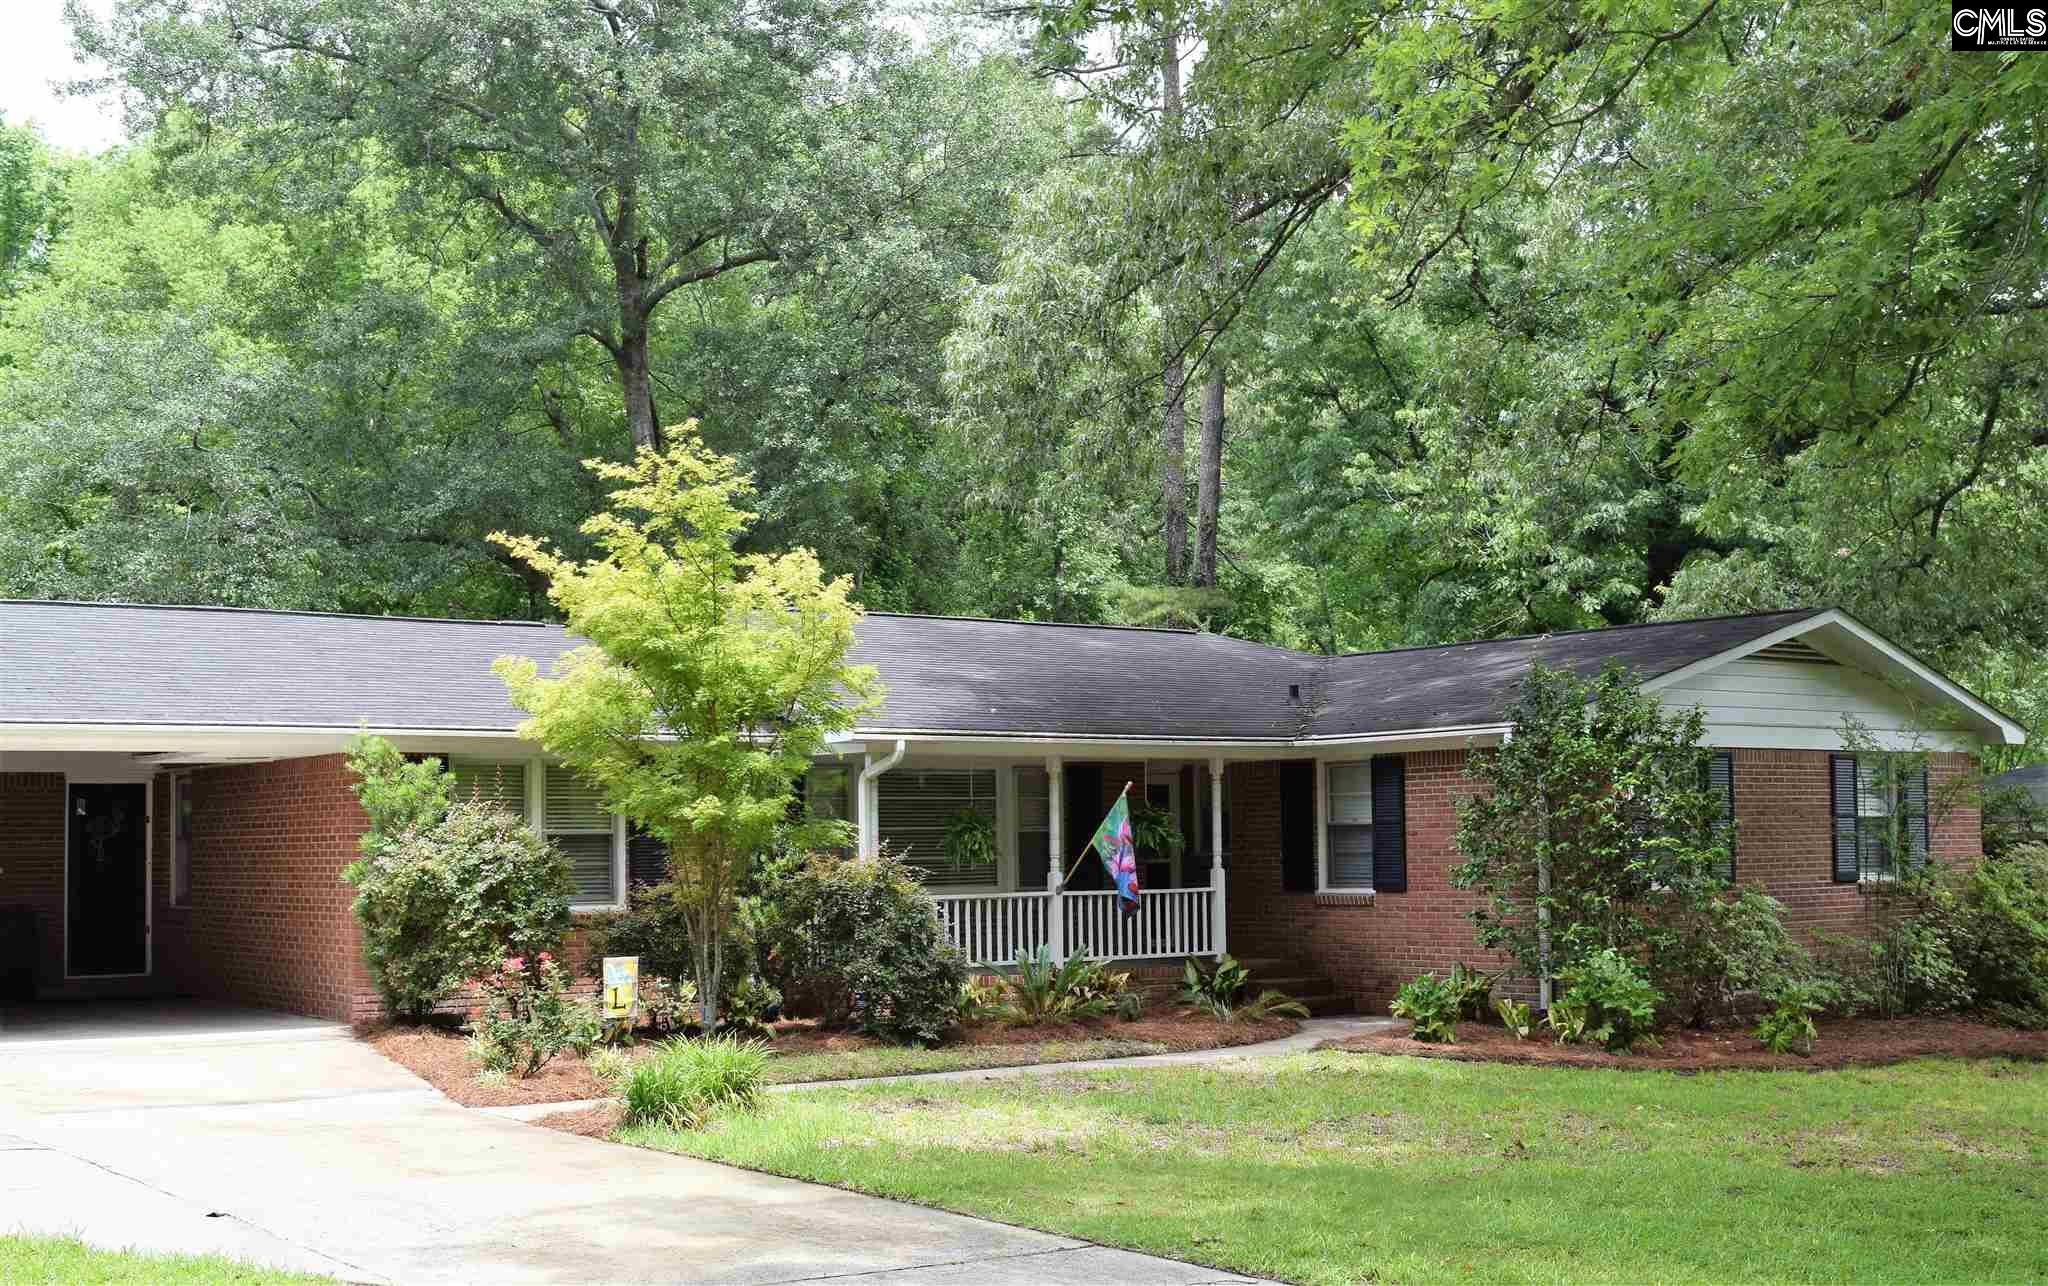 3619 Deerfield Columbia, SC 29204-3705